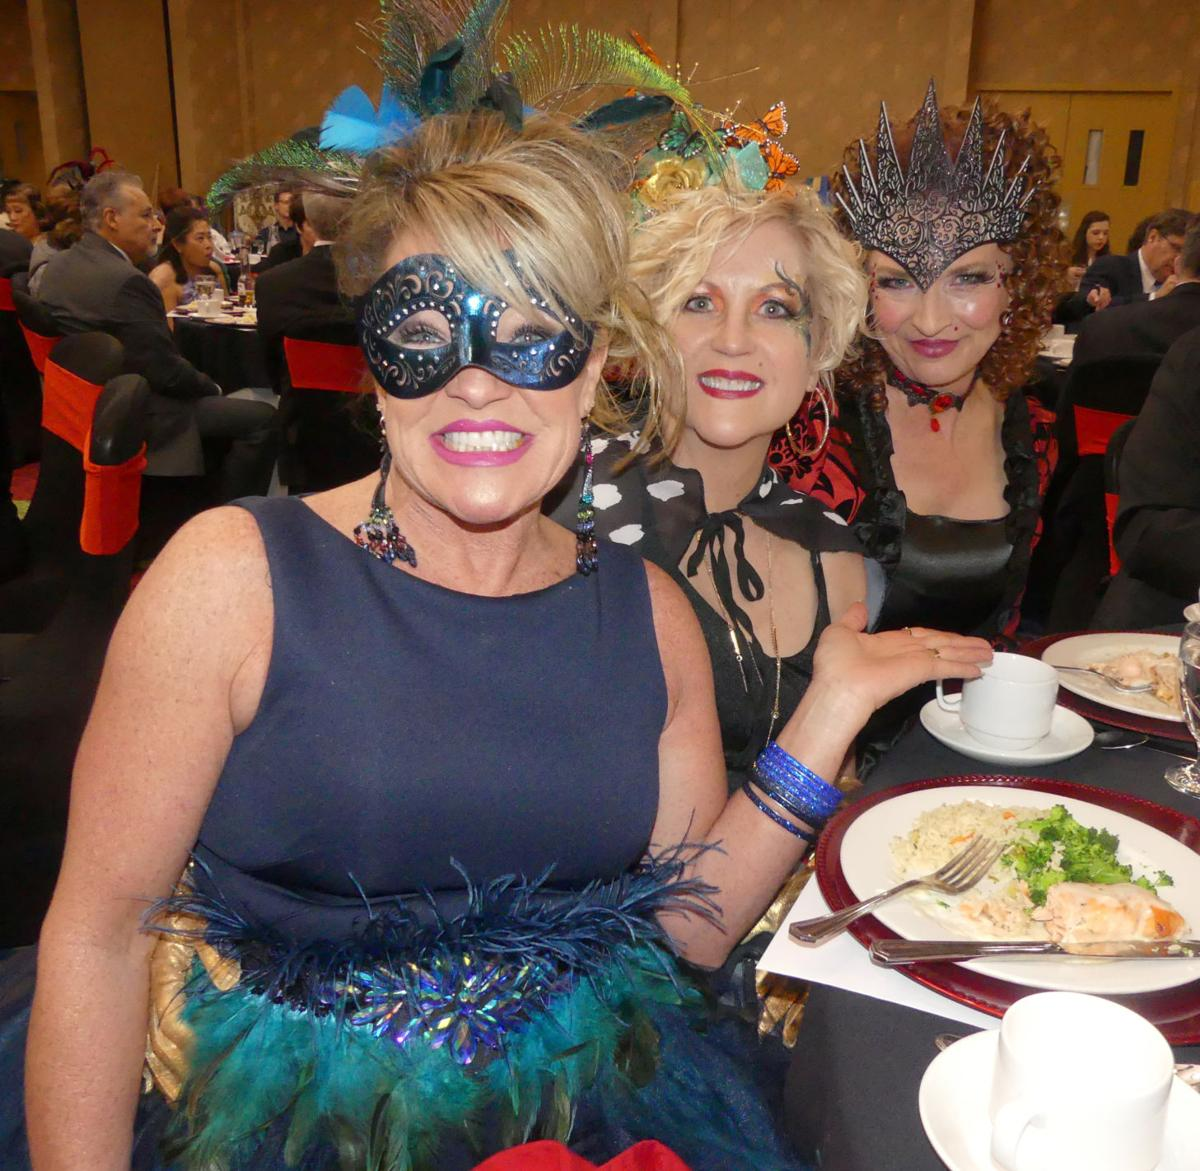 Chorale hosts Monte Carlo Masquerade to fundraise for Normandy